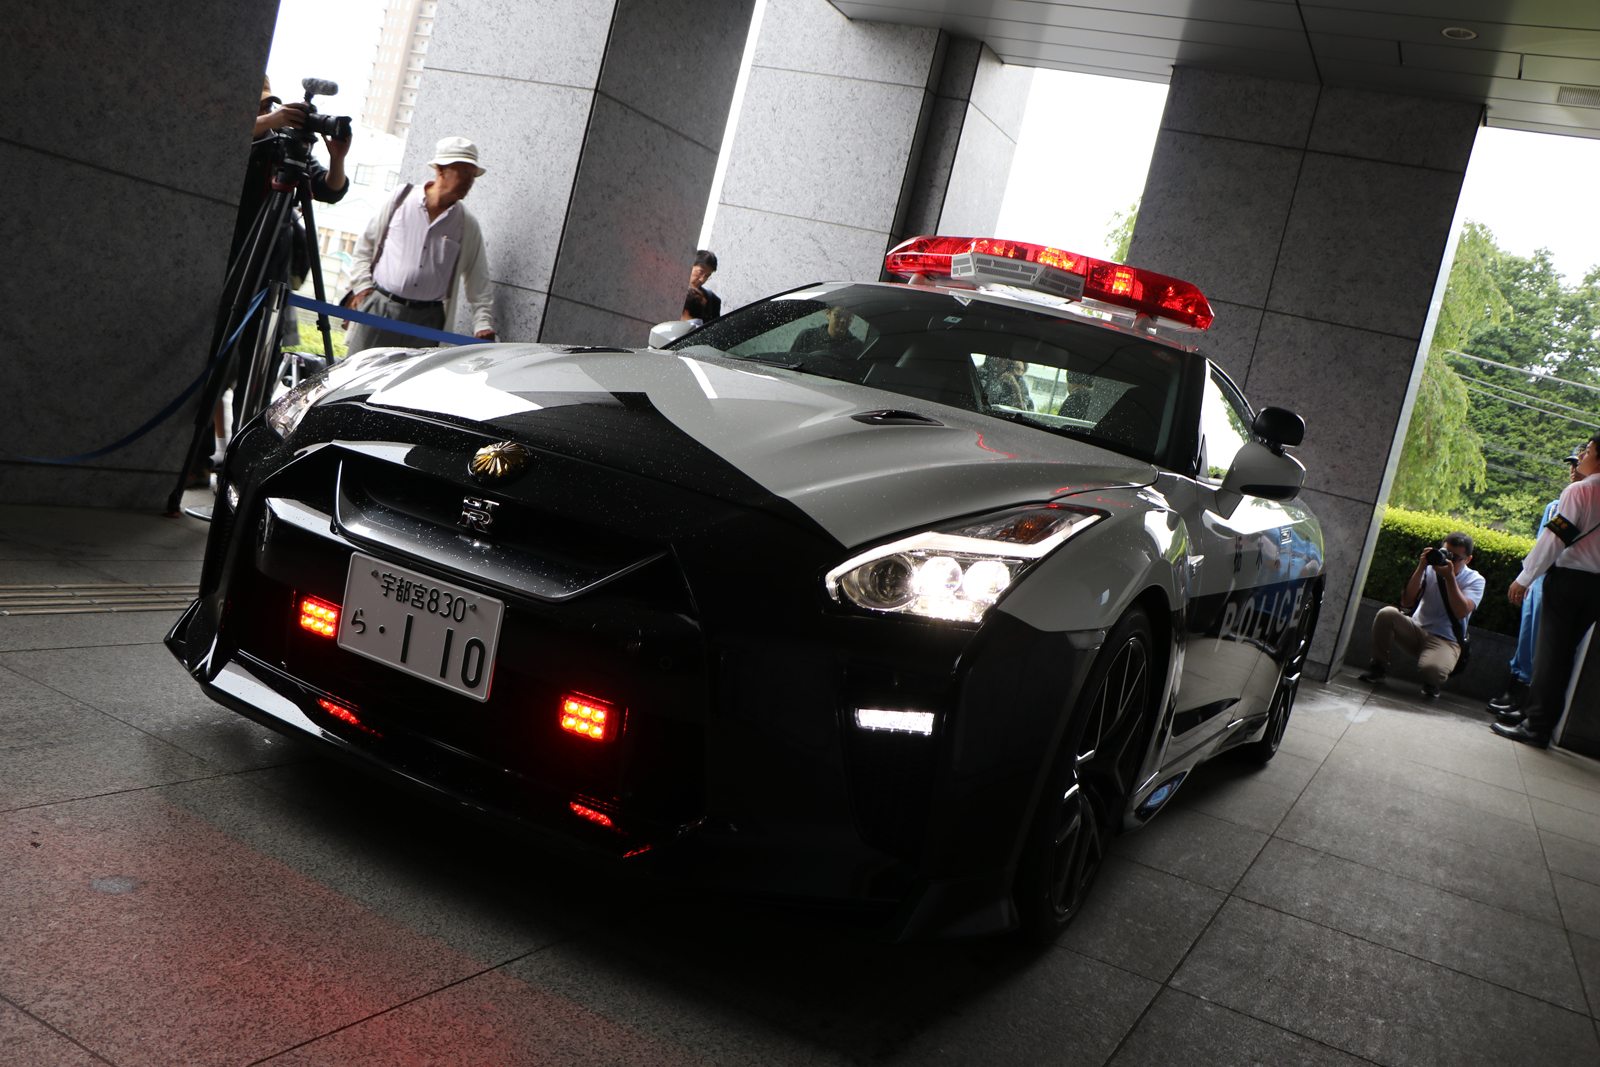 Japan Just Put an R35 Nissan GTR Police Car Into Service » AutoGuide ...